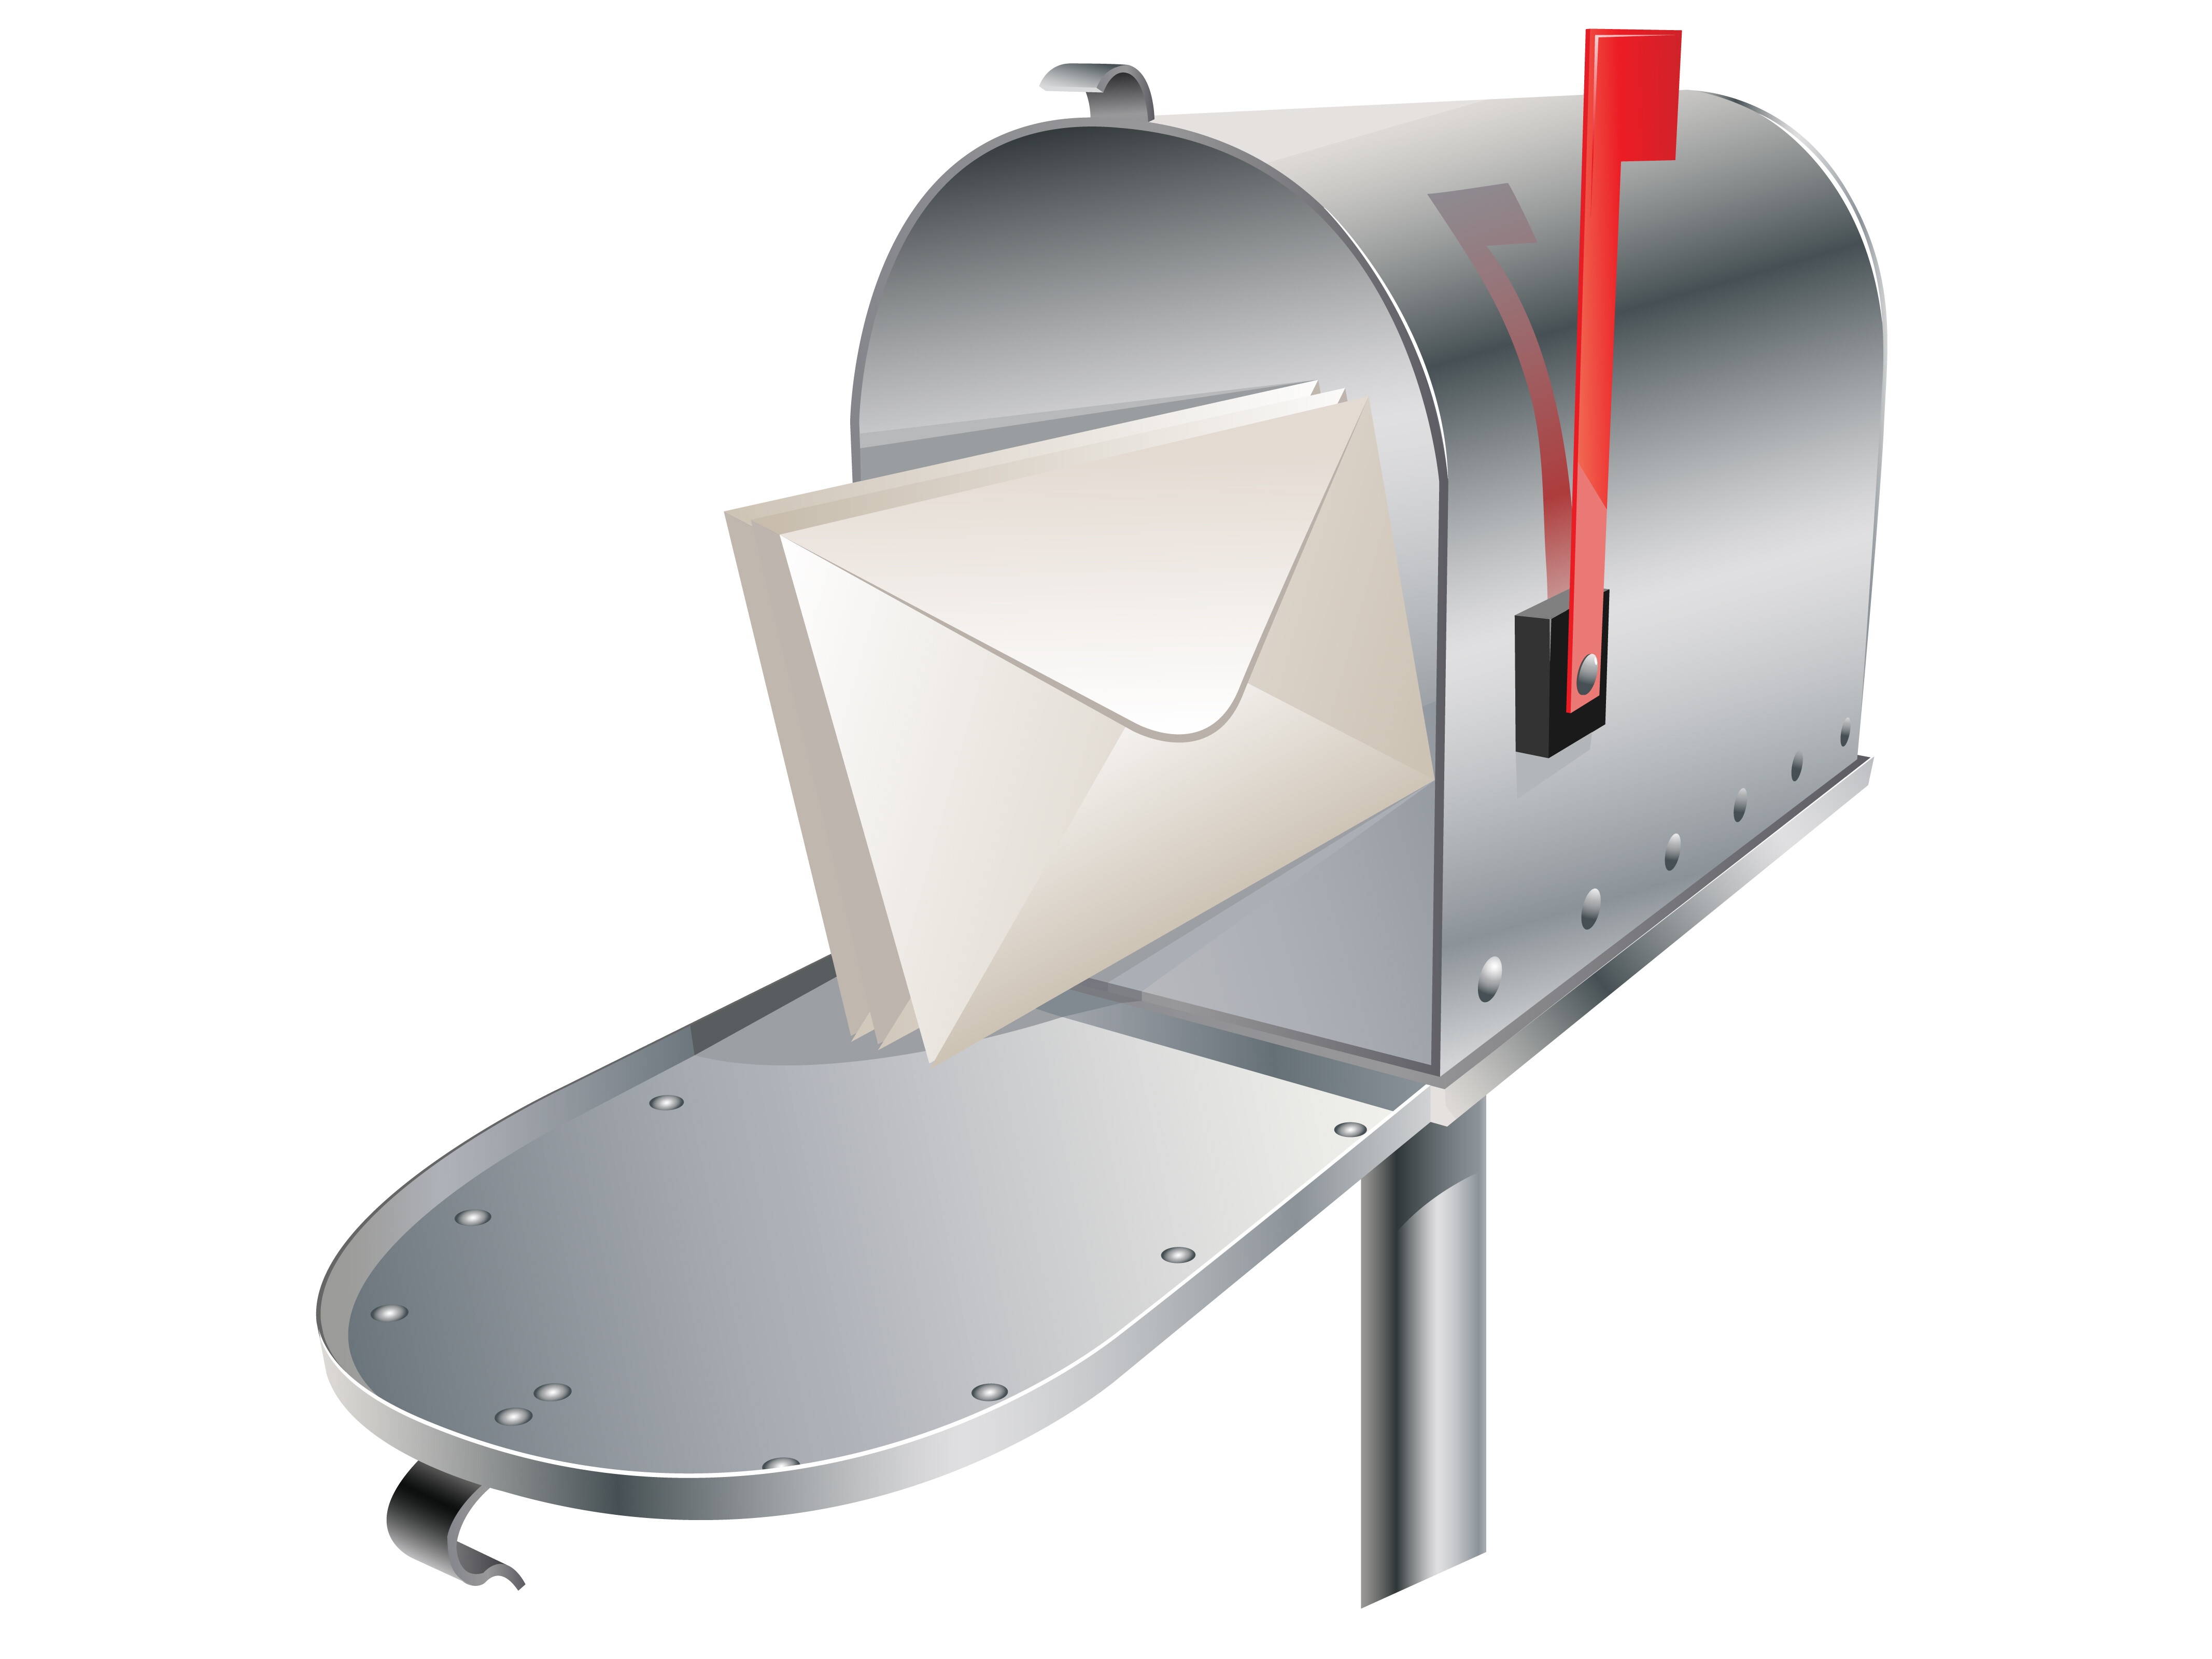 Printer & Direct Mail Business Sale Closed by Harvest Business Brokers